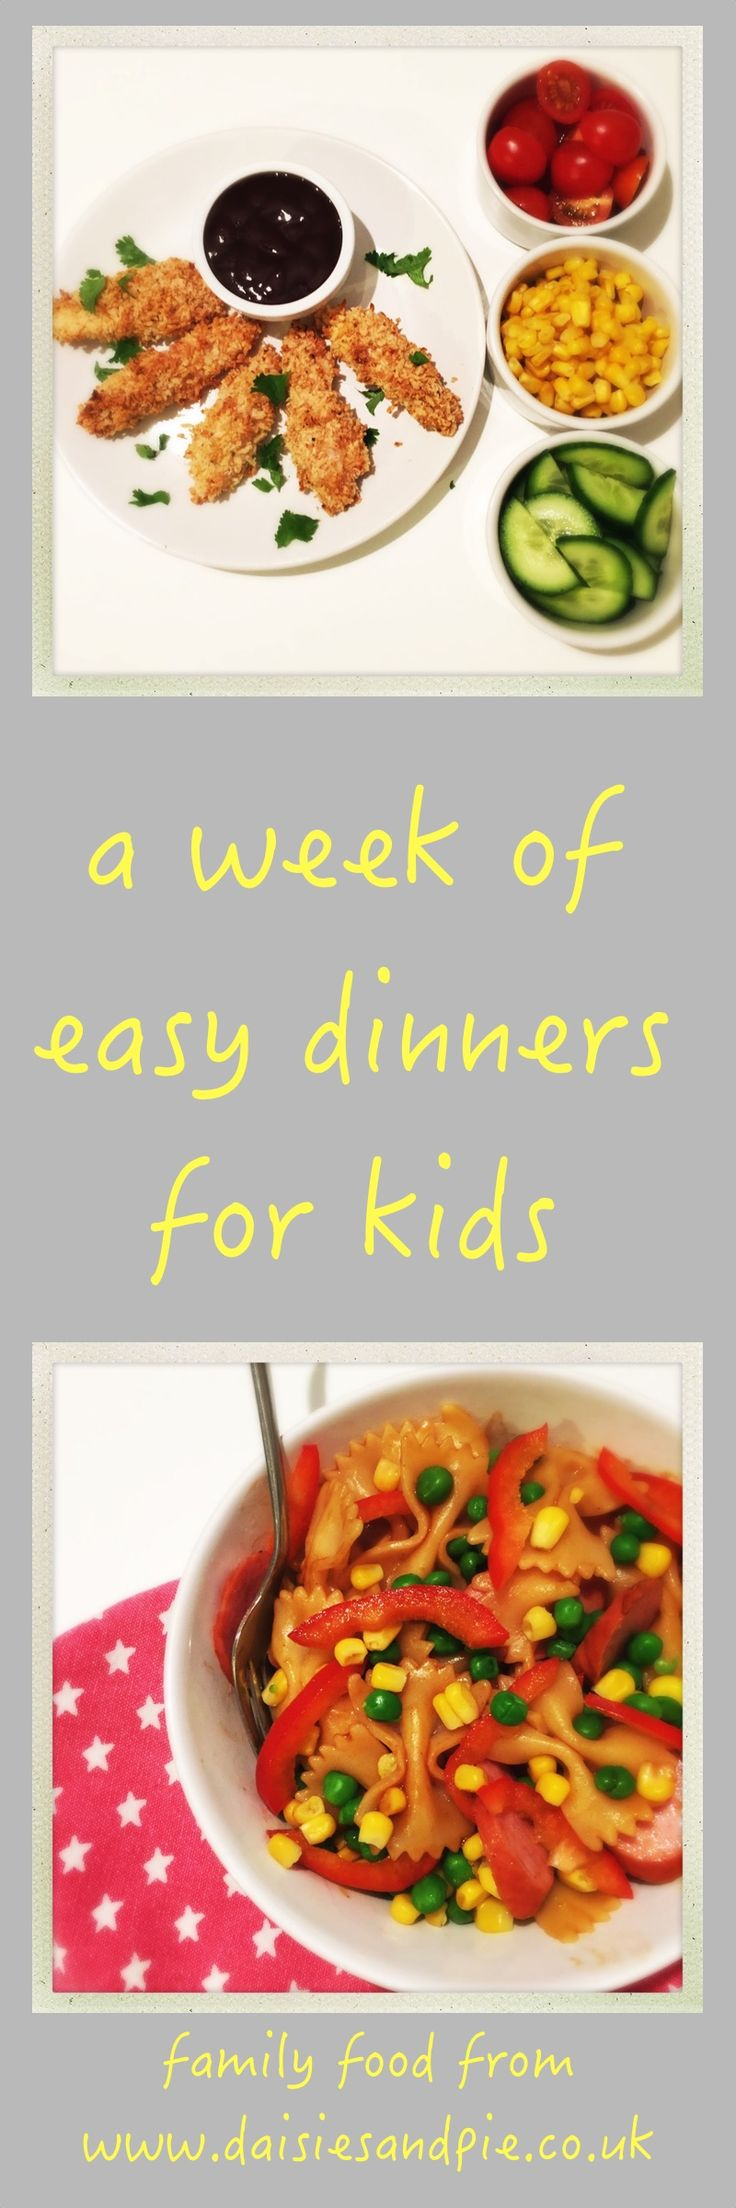 easy dinner ideas for kids, a week of easy school day dinners, quick kid friendly dinner recipes, easy family food from daisies and pie